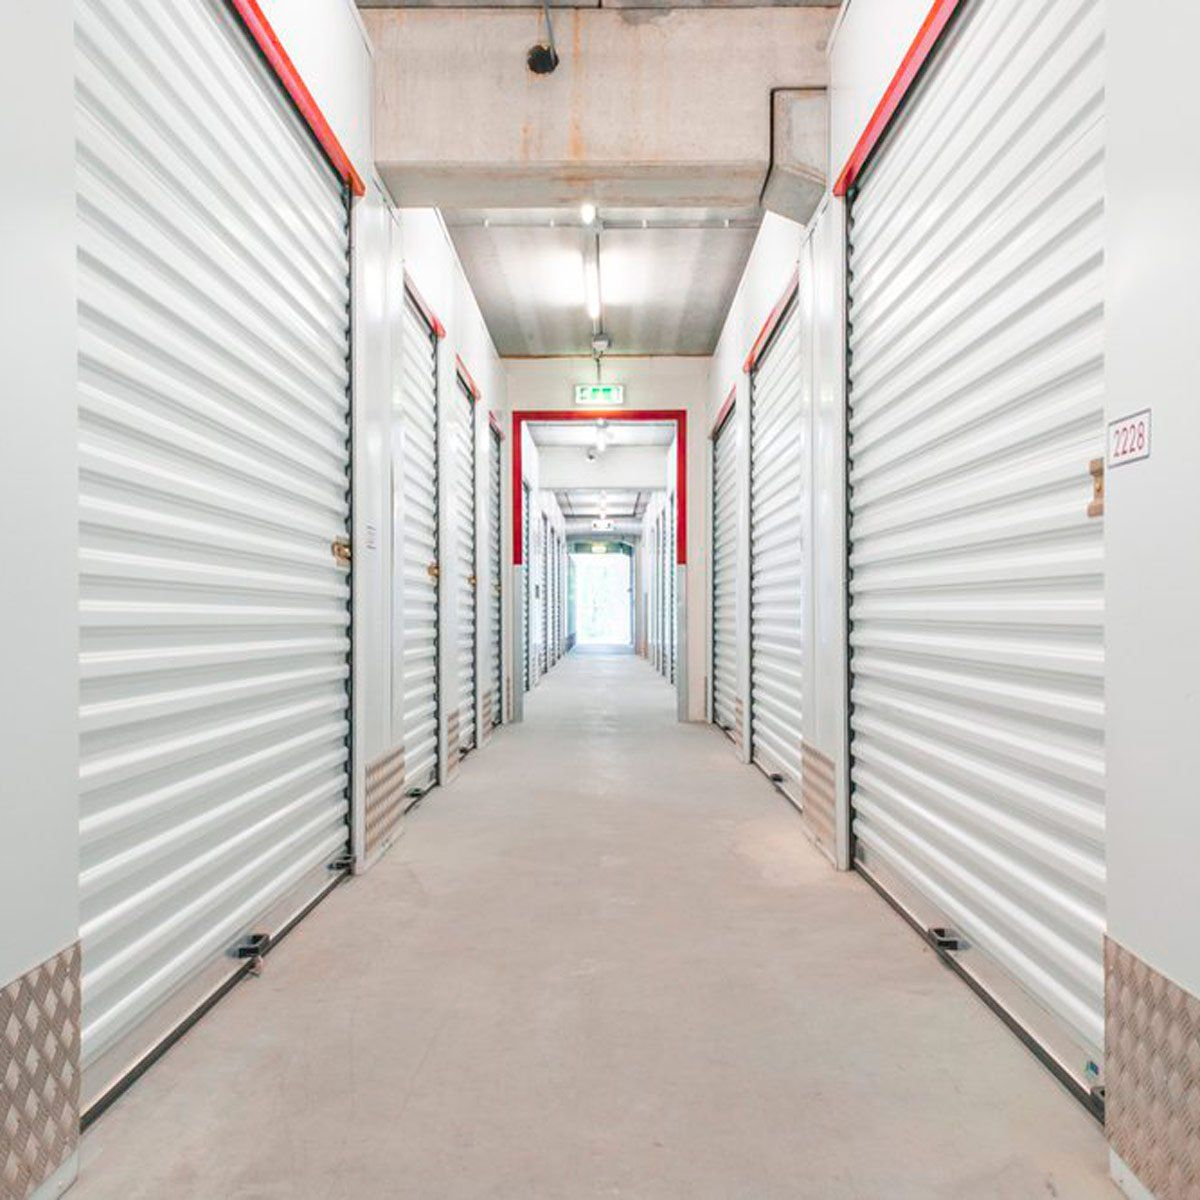 10 Things You Should Never Keep In A Storage Unit With Images Storage Unit Storage Unit Organization Company Storage